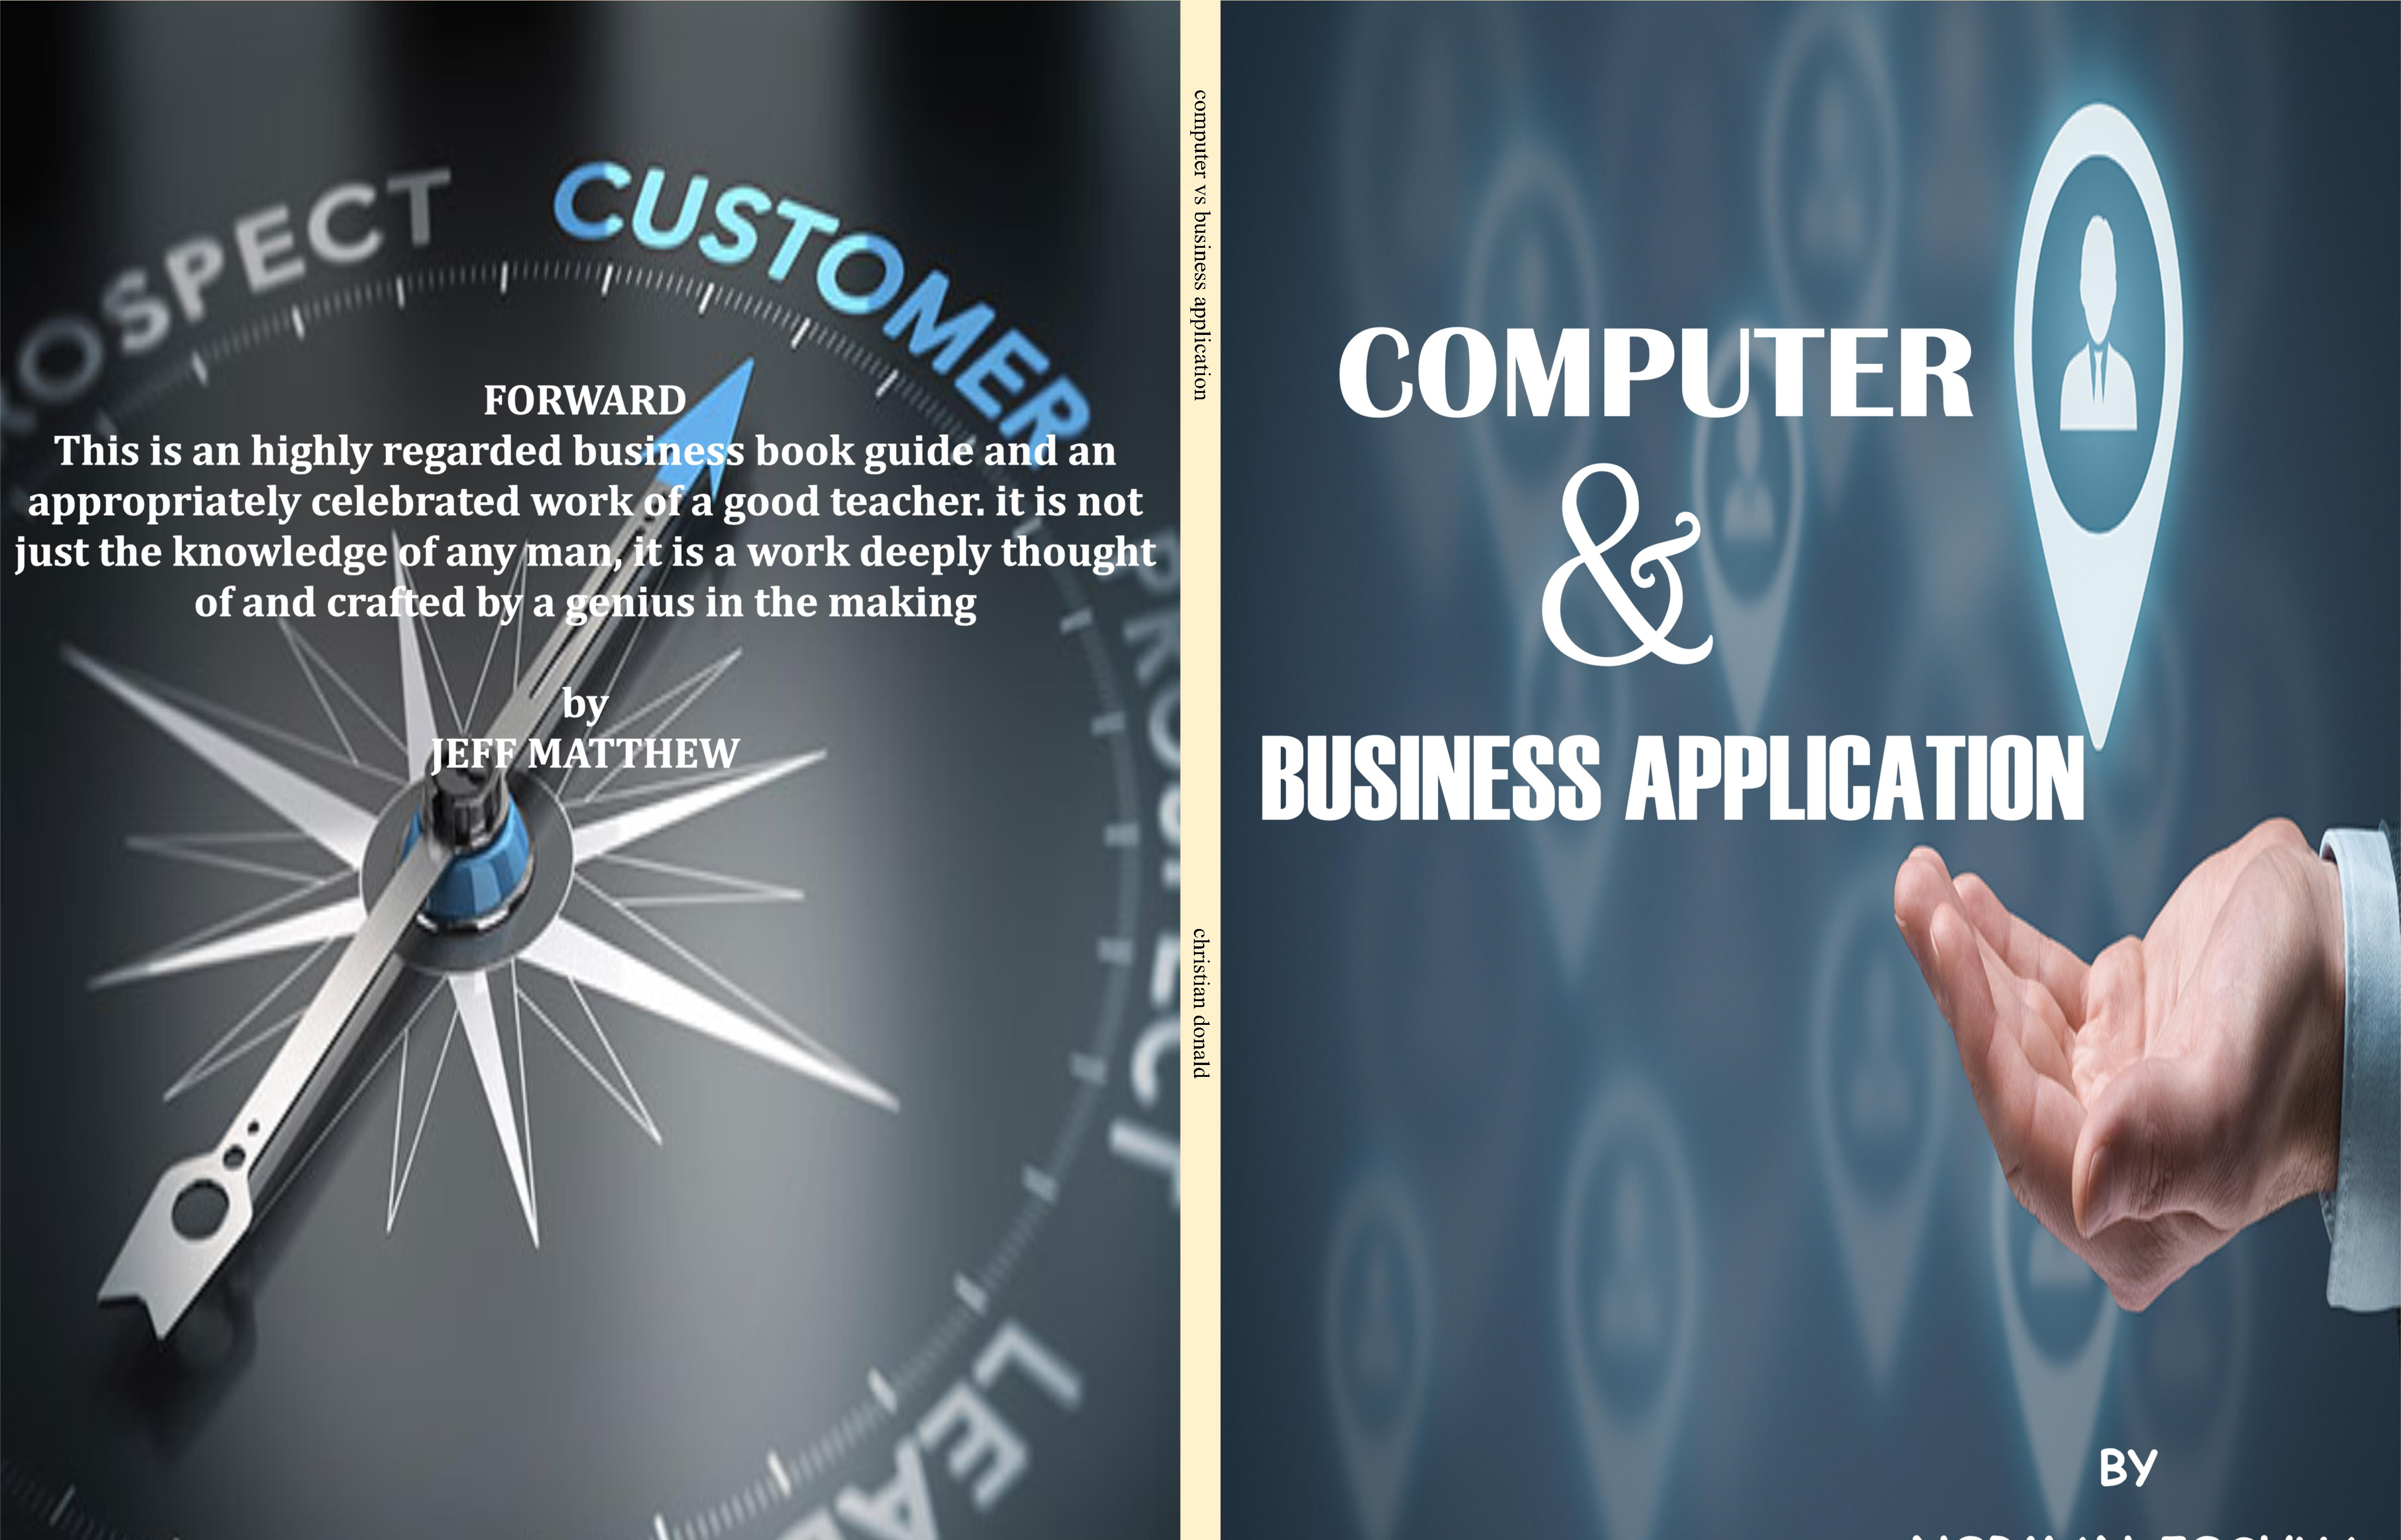 computer vs business application cover image